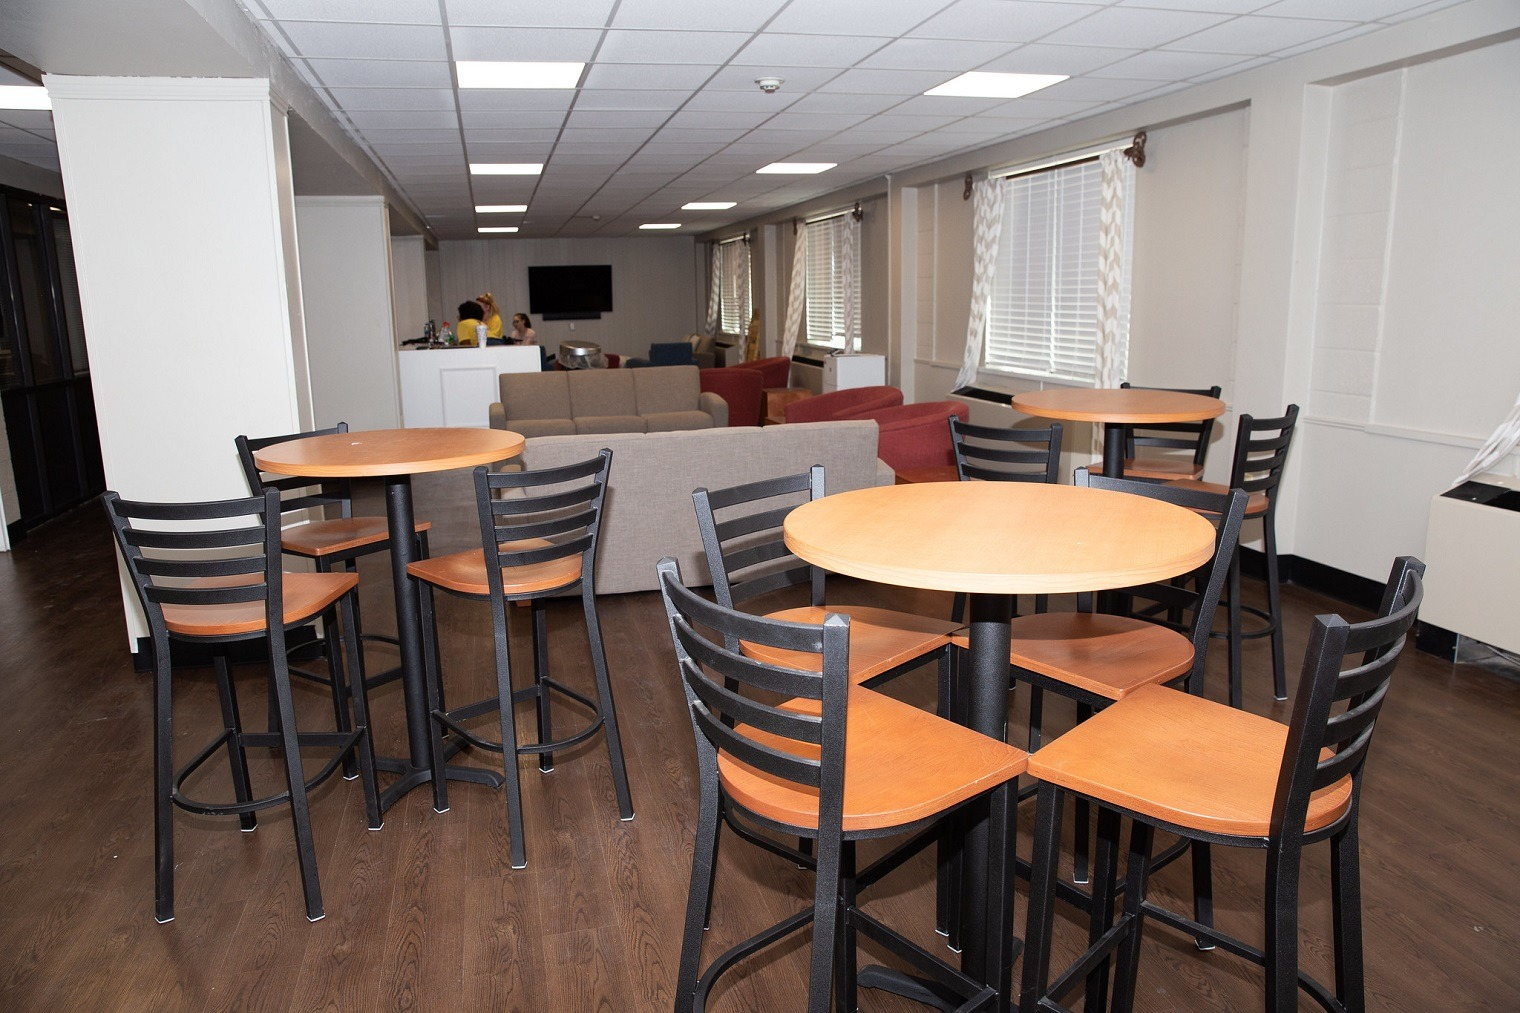 Photo of a Lange Hall kitchen/common area.